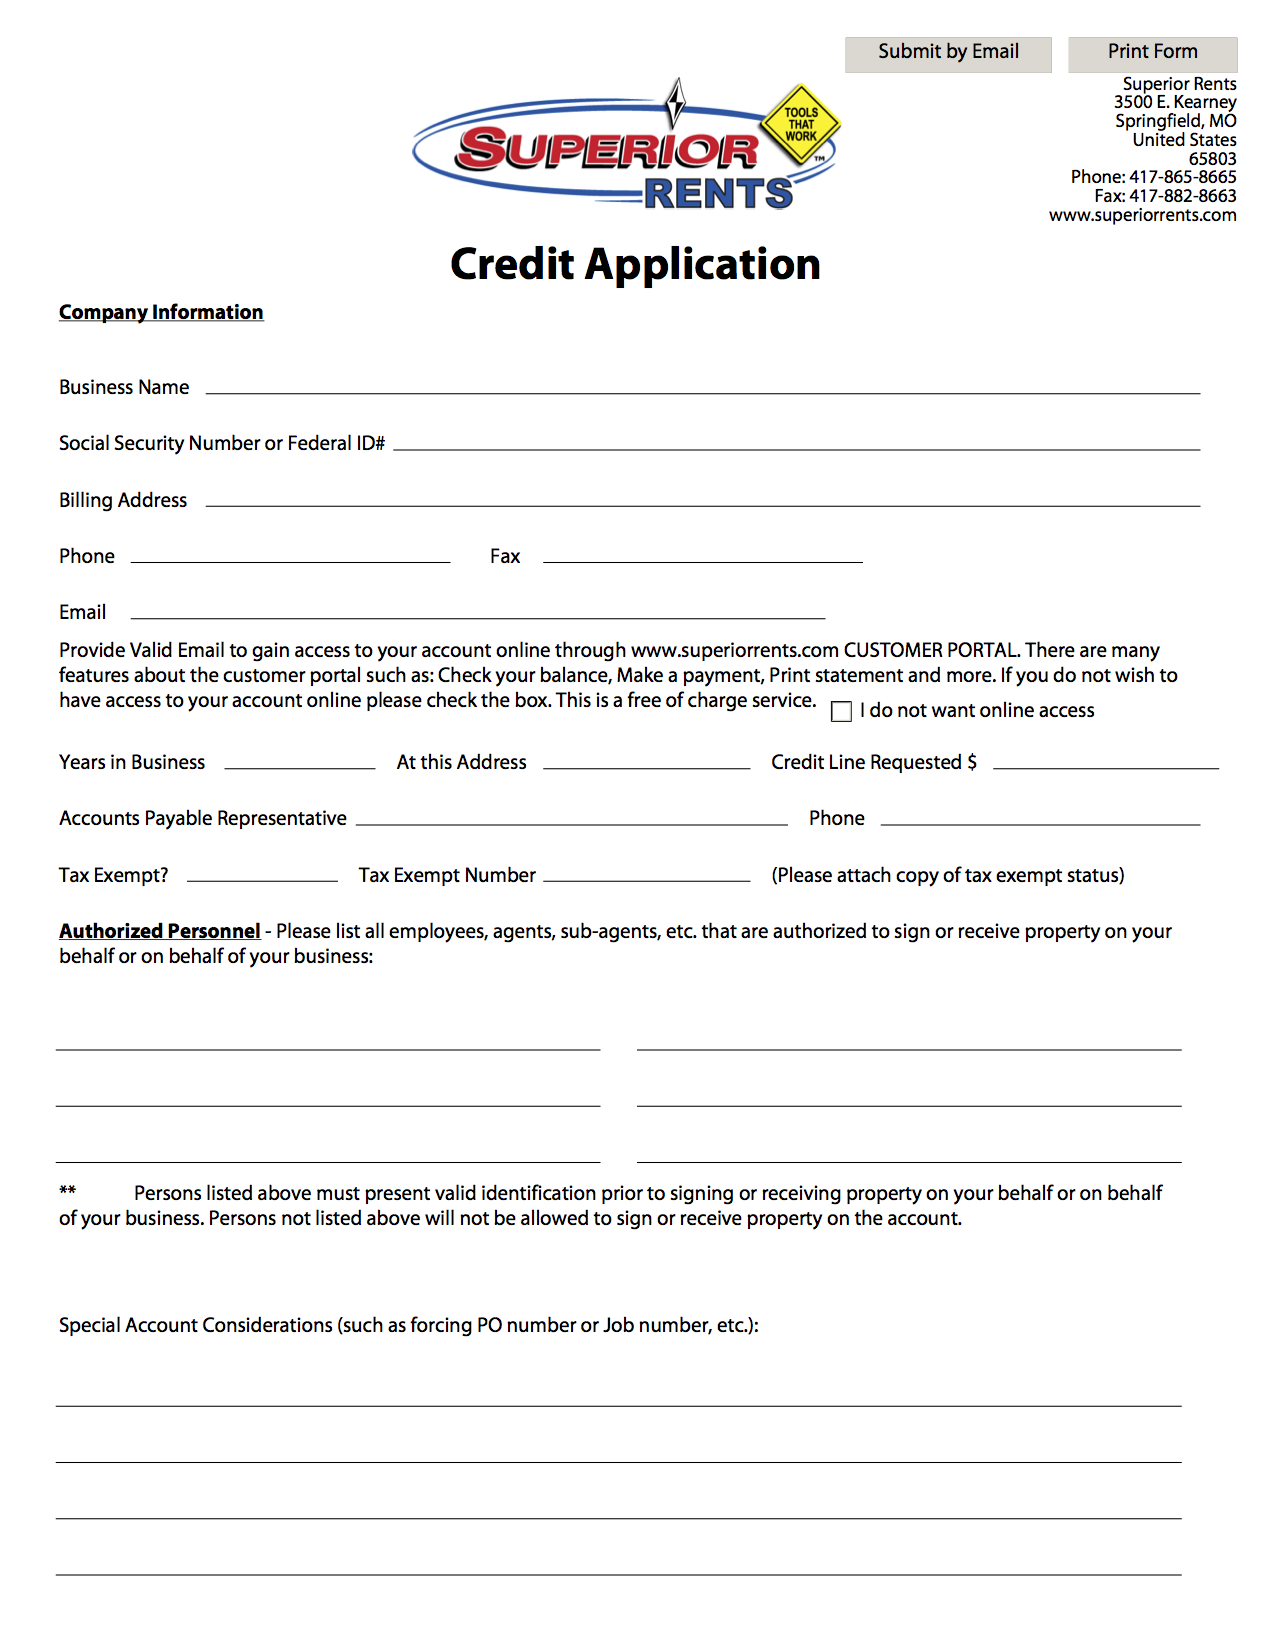 City union bank account opening form - city union bank account ...